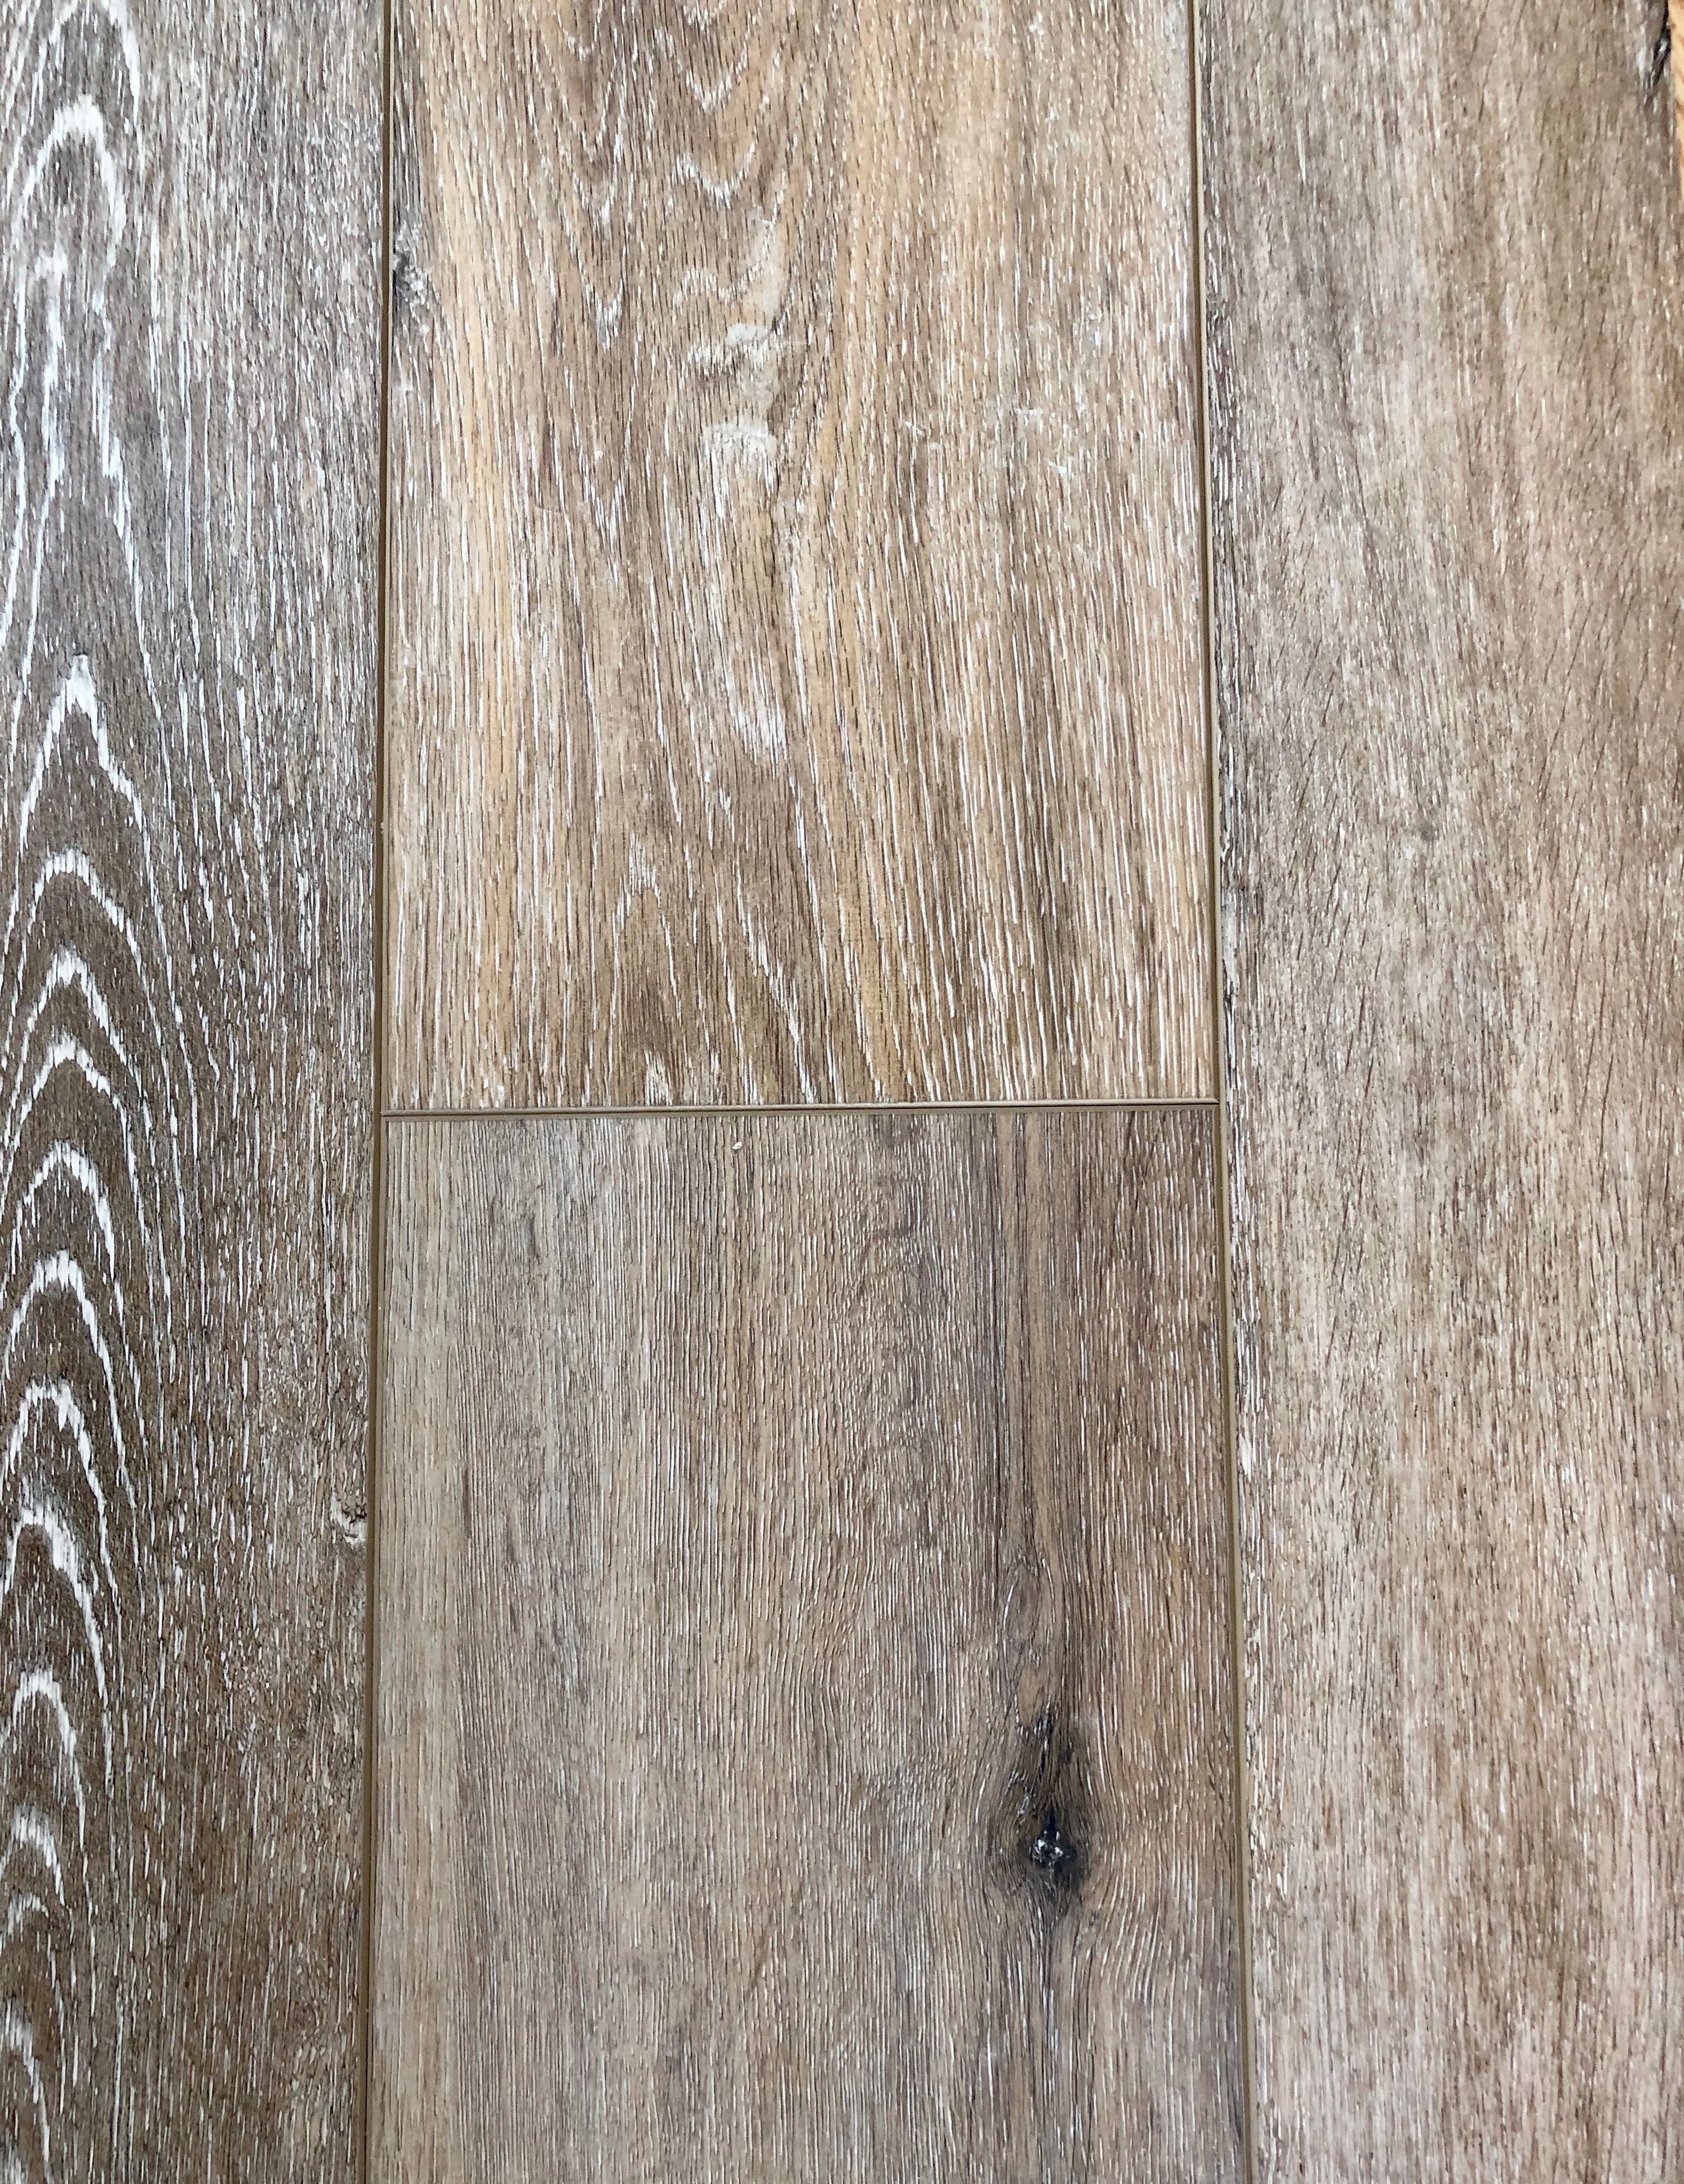 Our Vinyl Plank Floor Selection Downs H20 Timber Plus In Charleston From Flooring America Vinyl Plank Flooring Vinyl Plank Flooring